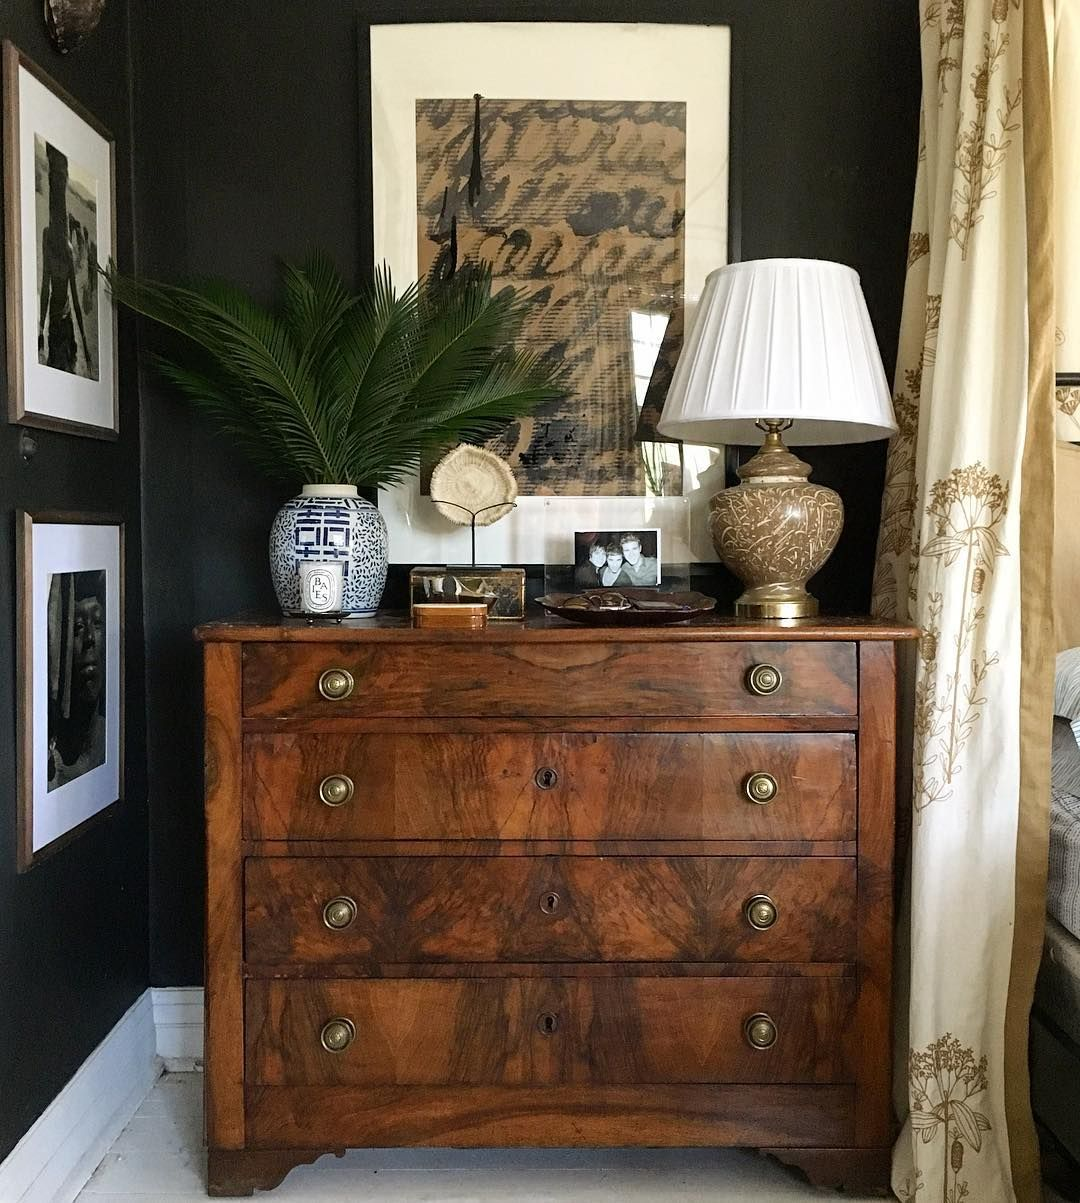 by dresser cambiz used craigslist of superb photo miami for florida sale owner furniture info